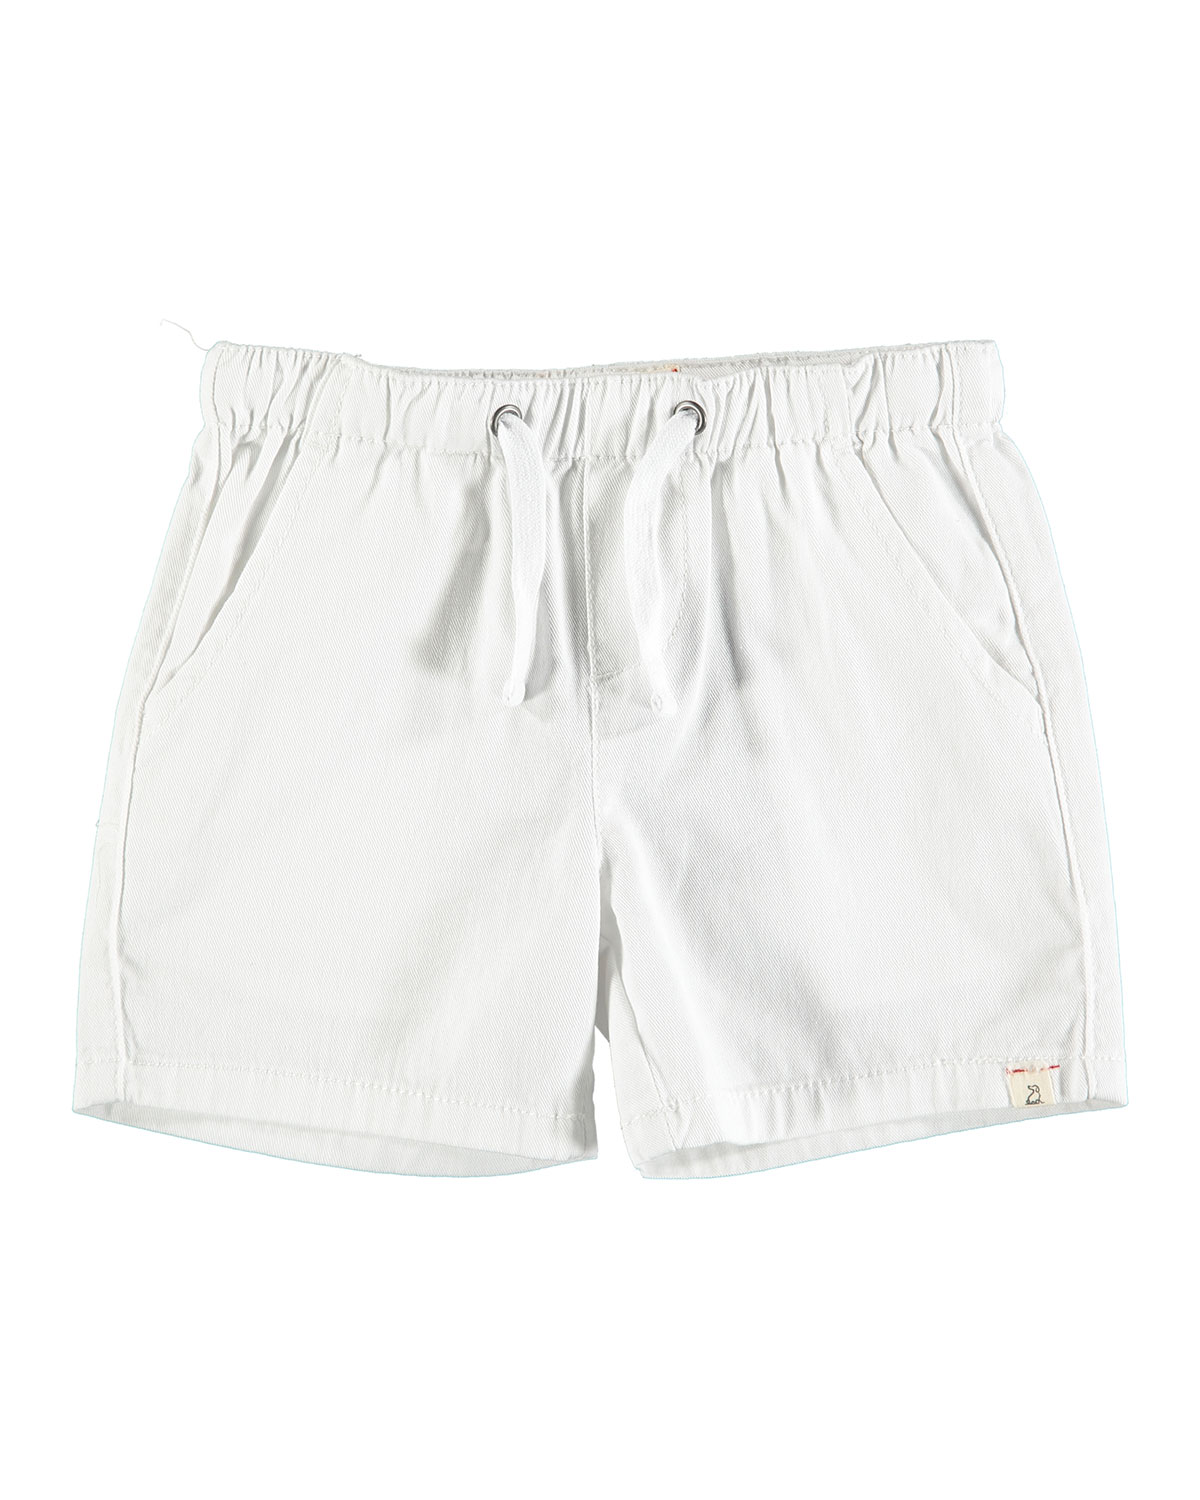 Me & Henry Boy's Drawstring Twill Shorts w/ Children's Book, Size 12-24 Months